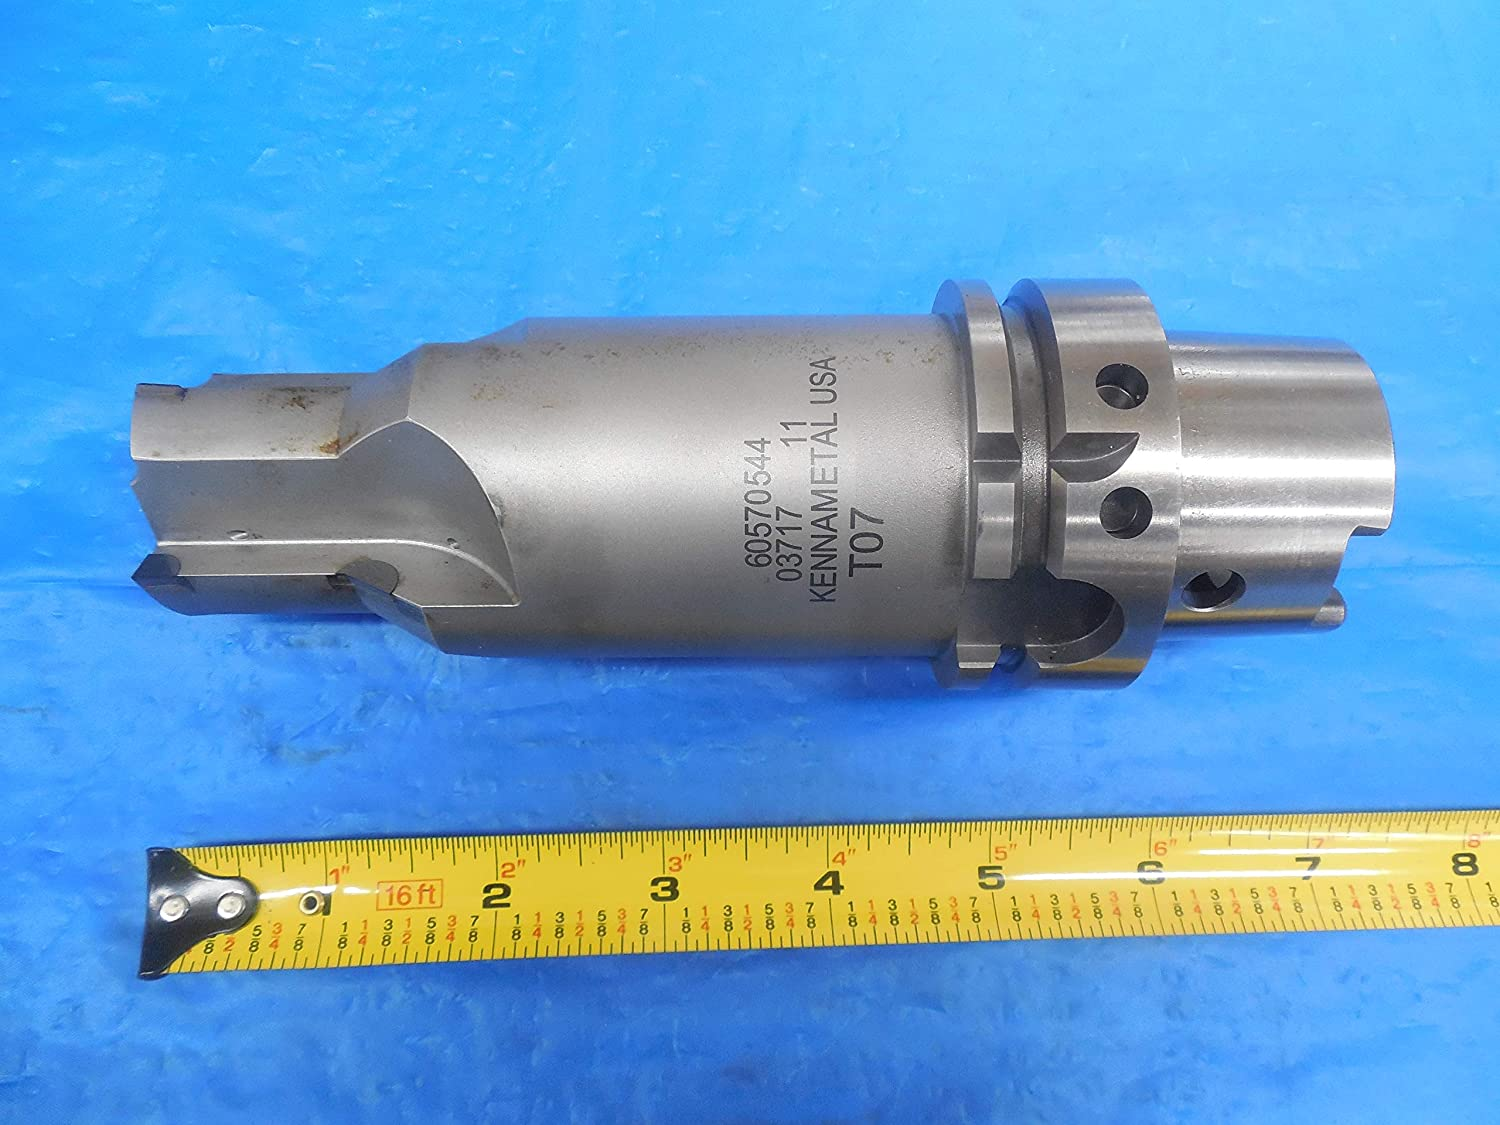 KENNAMETAL HSK63A 40 mm Integral Carbide Tipped END Mill Tool Holder 60570544